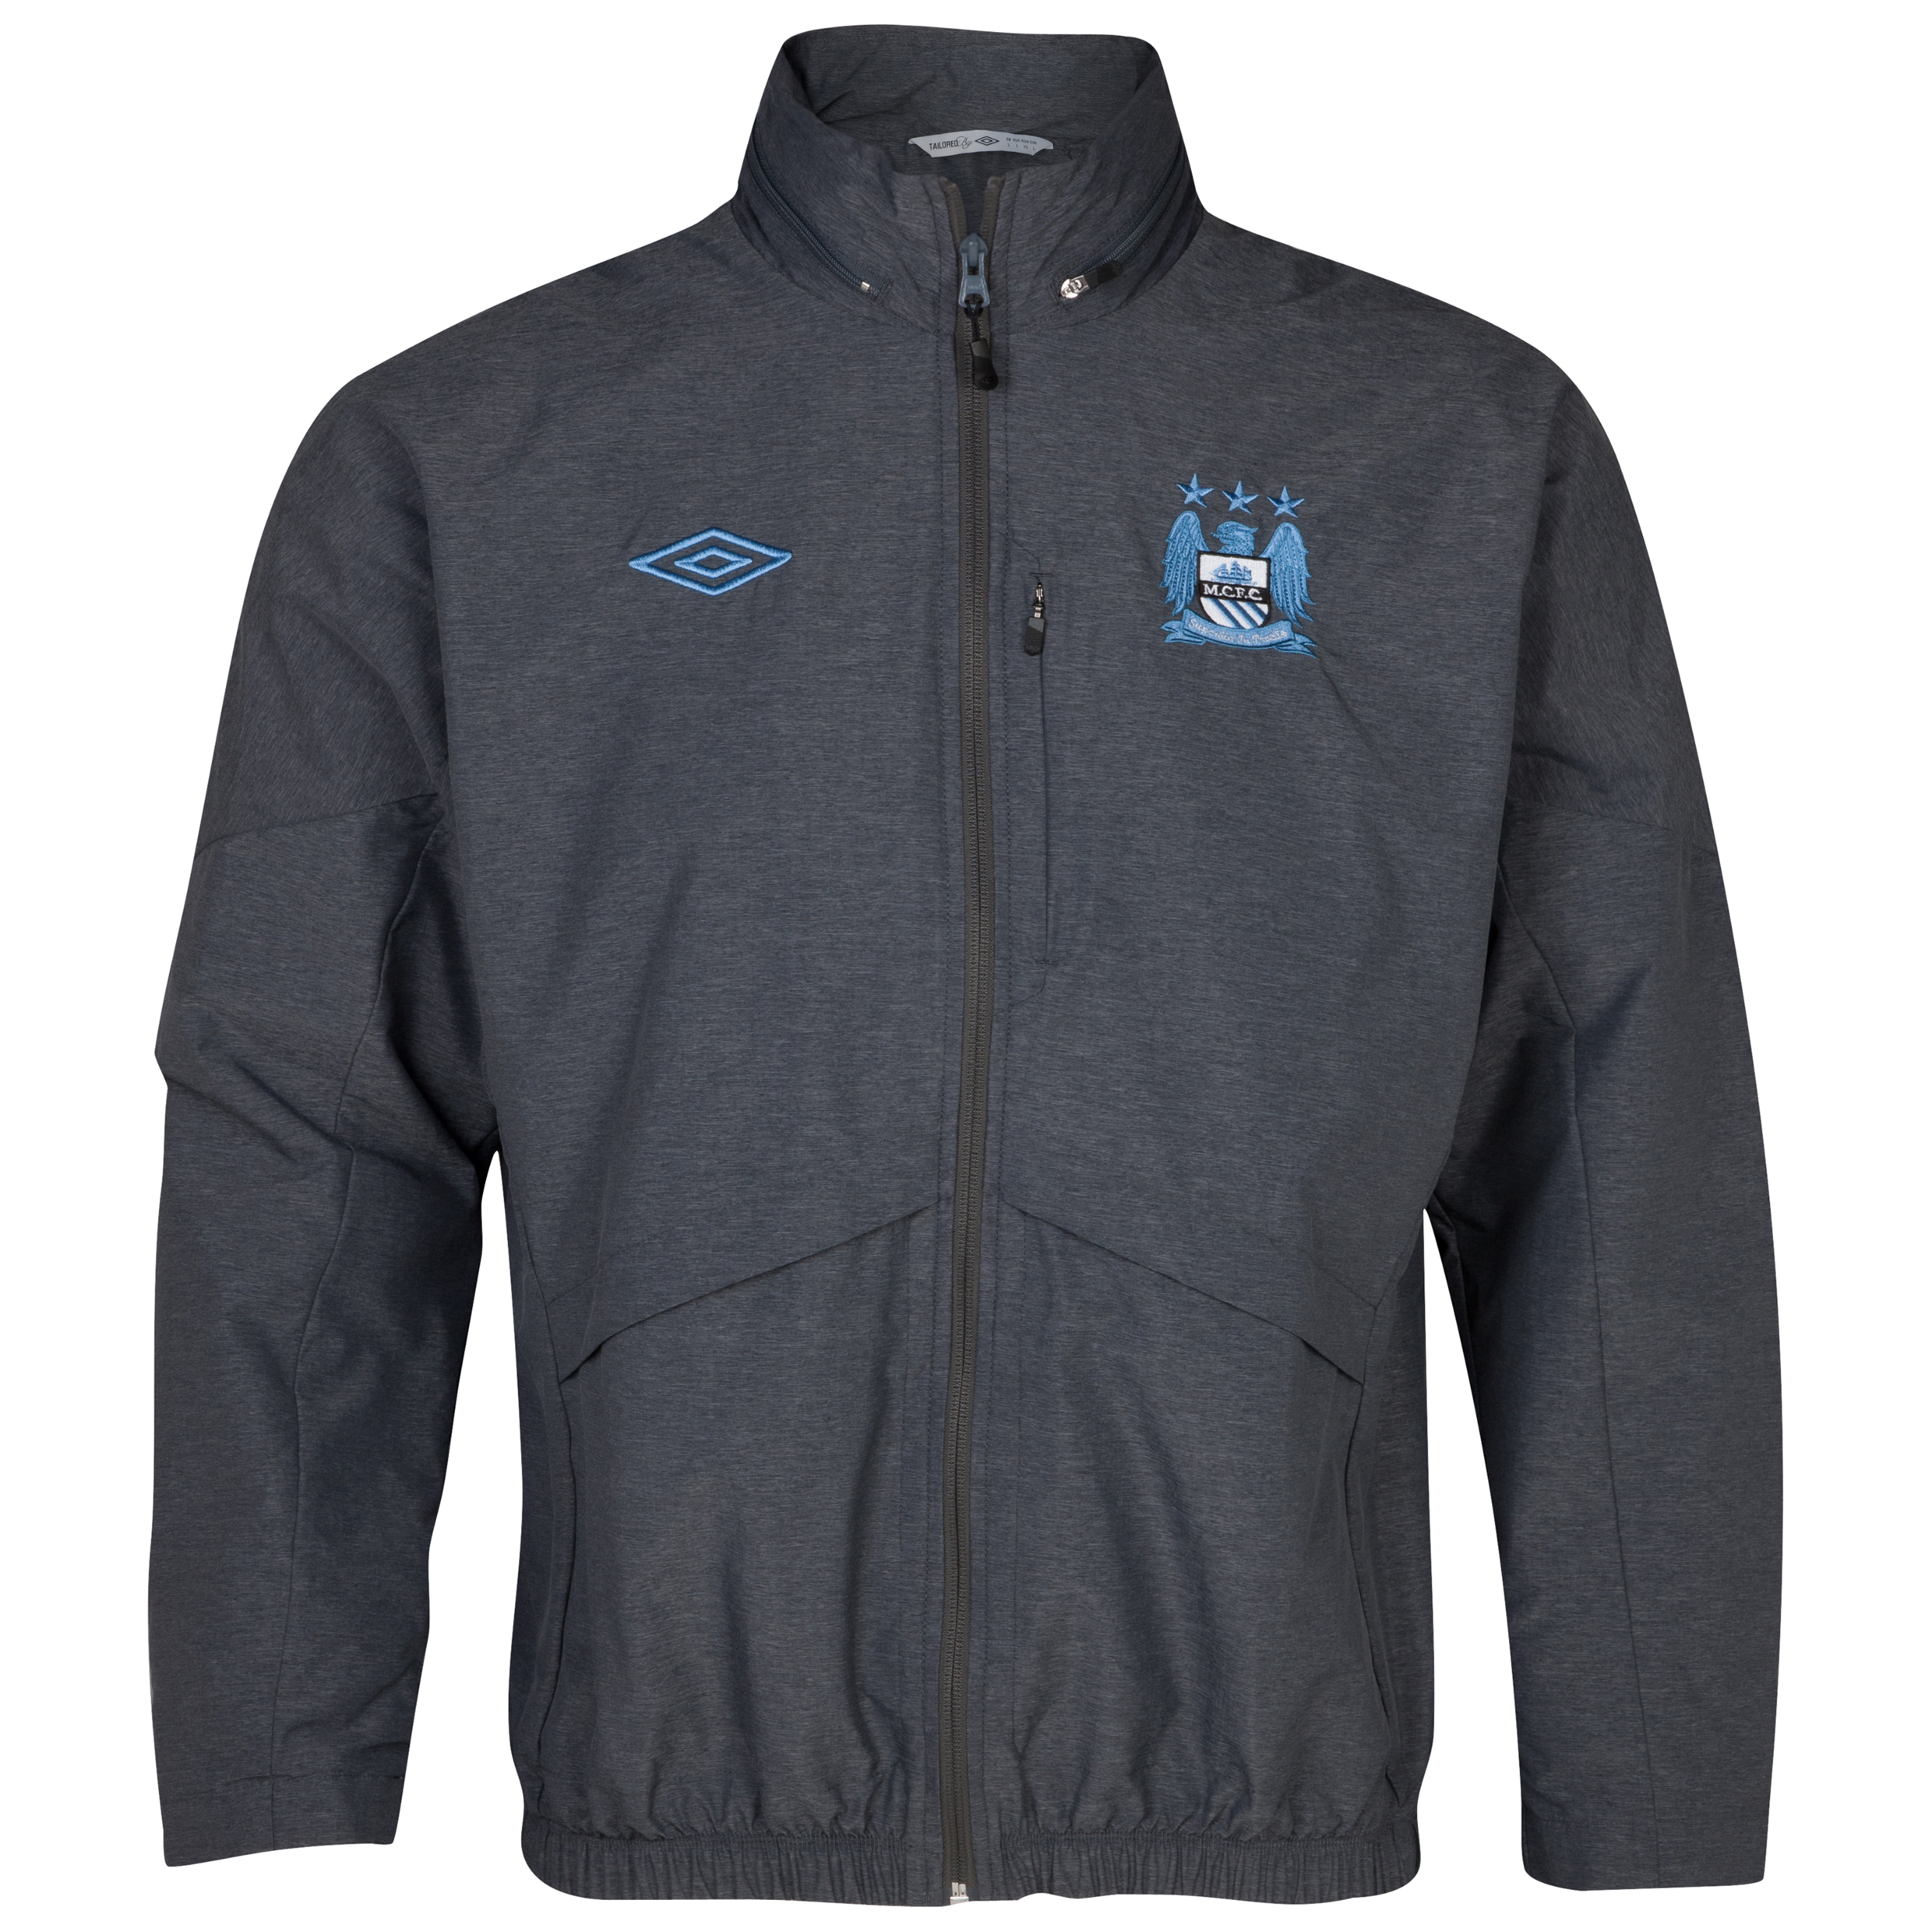 Manchester City Performance Woven Jacket - Carbon Marl